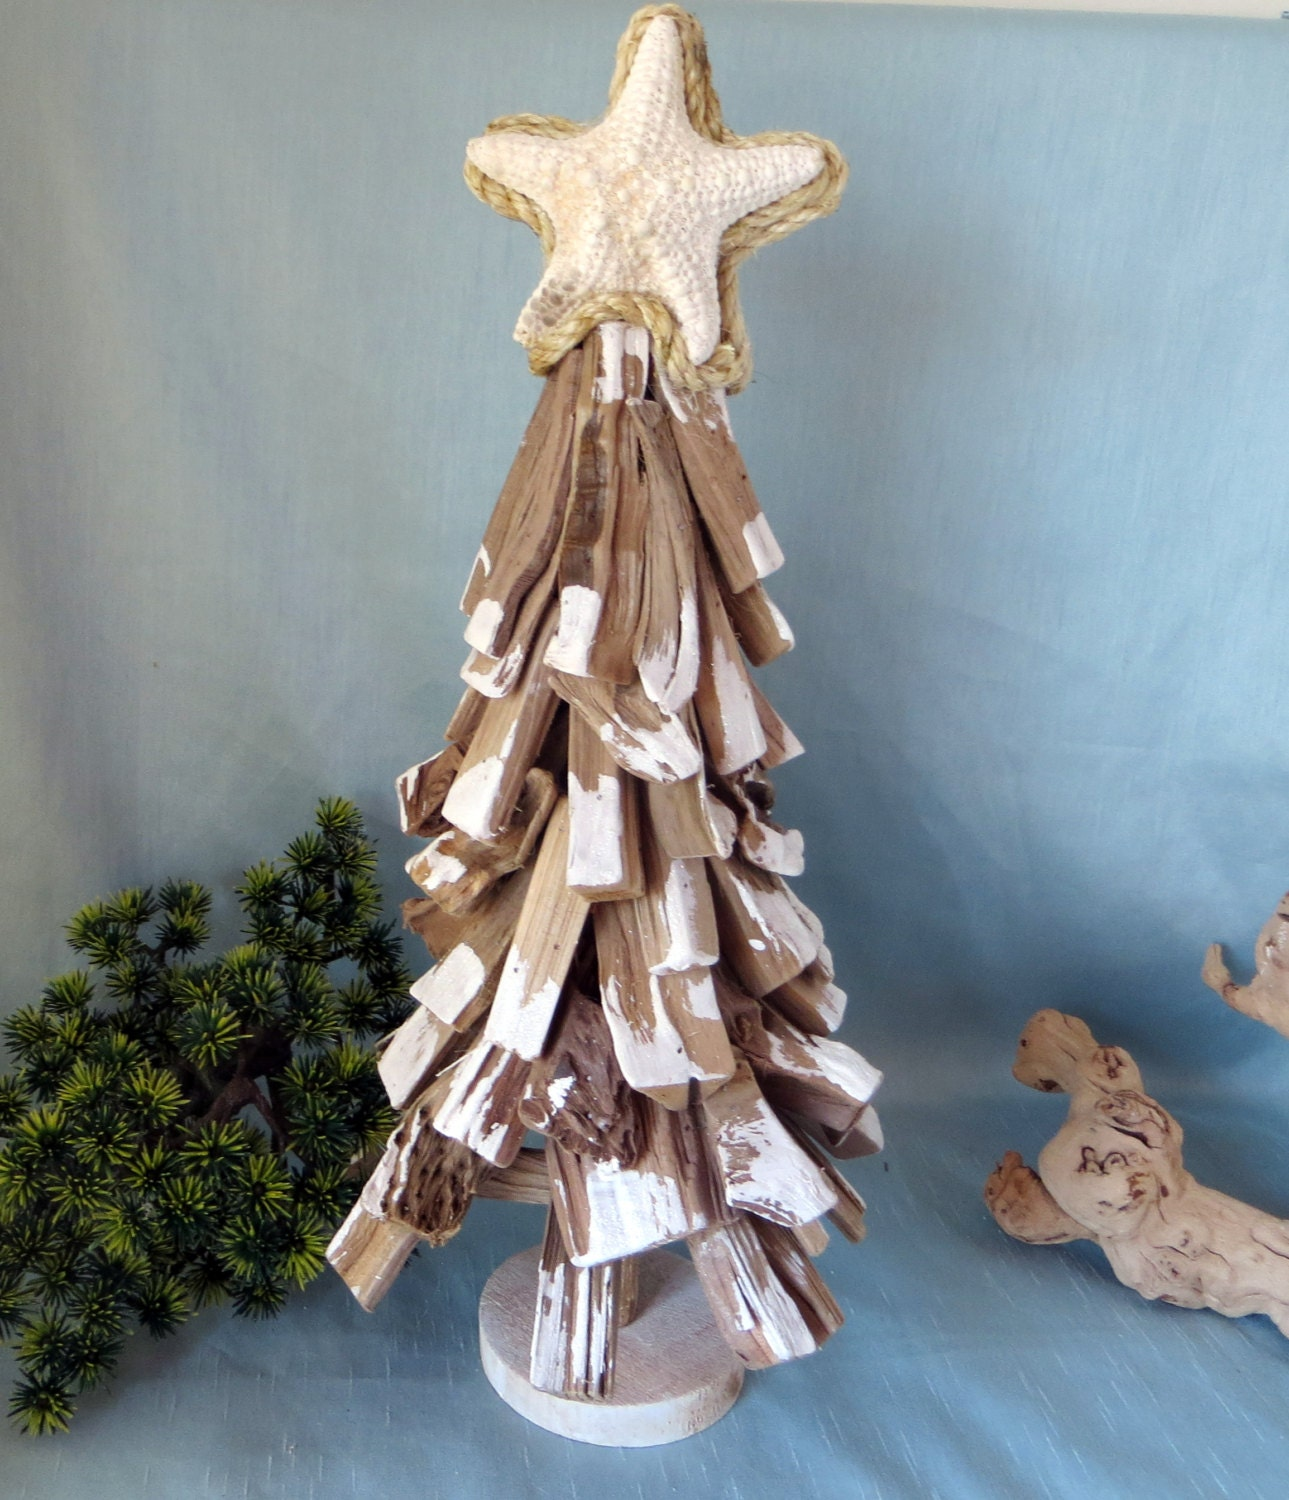 Hawaiian Christmas Tree Topper: Drift Wood Christmas Tree With Star Fish Topper_20 Inches